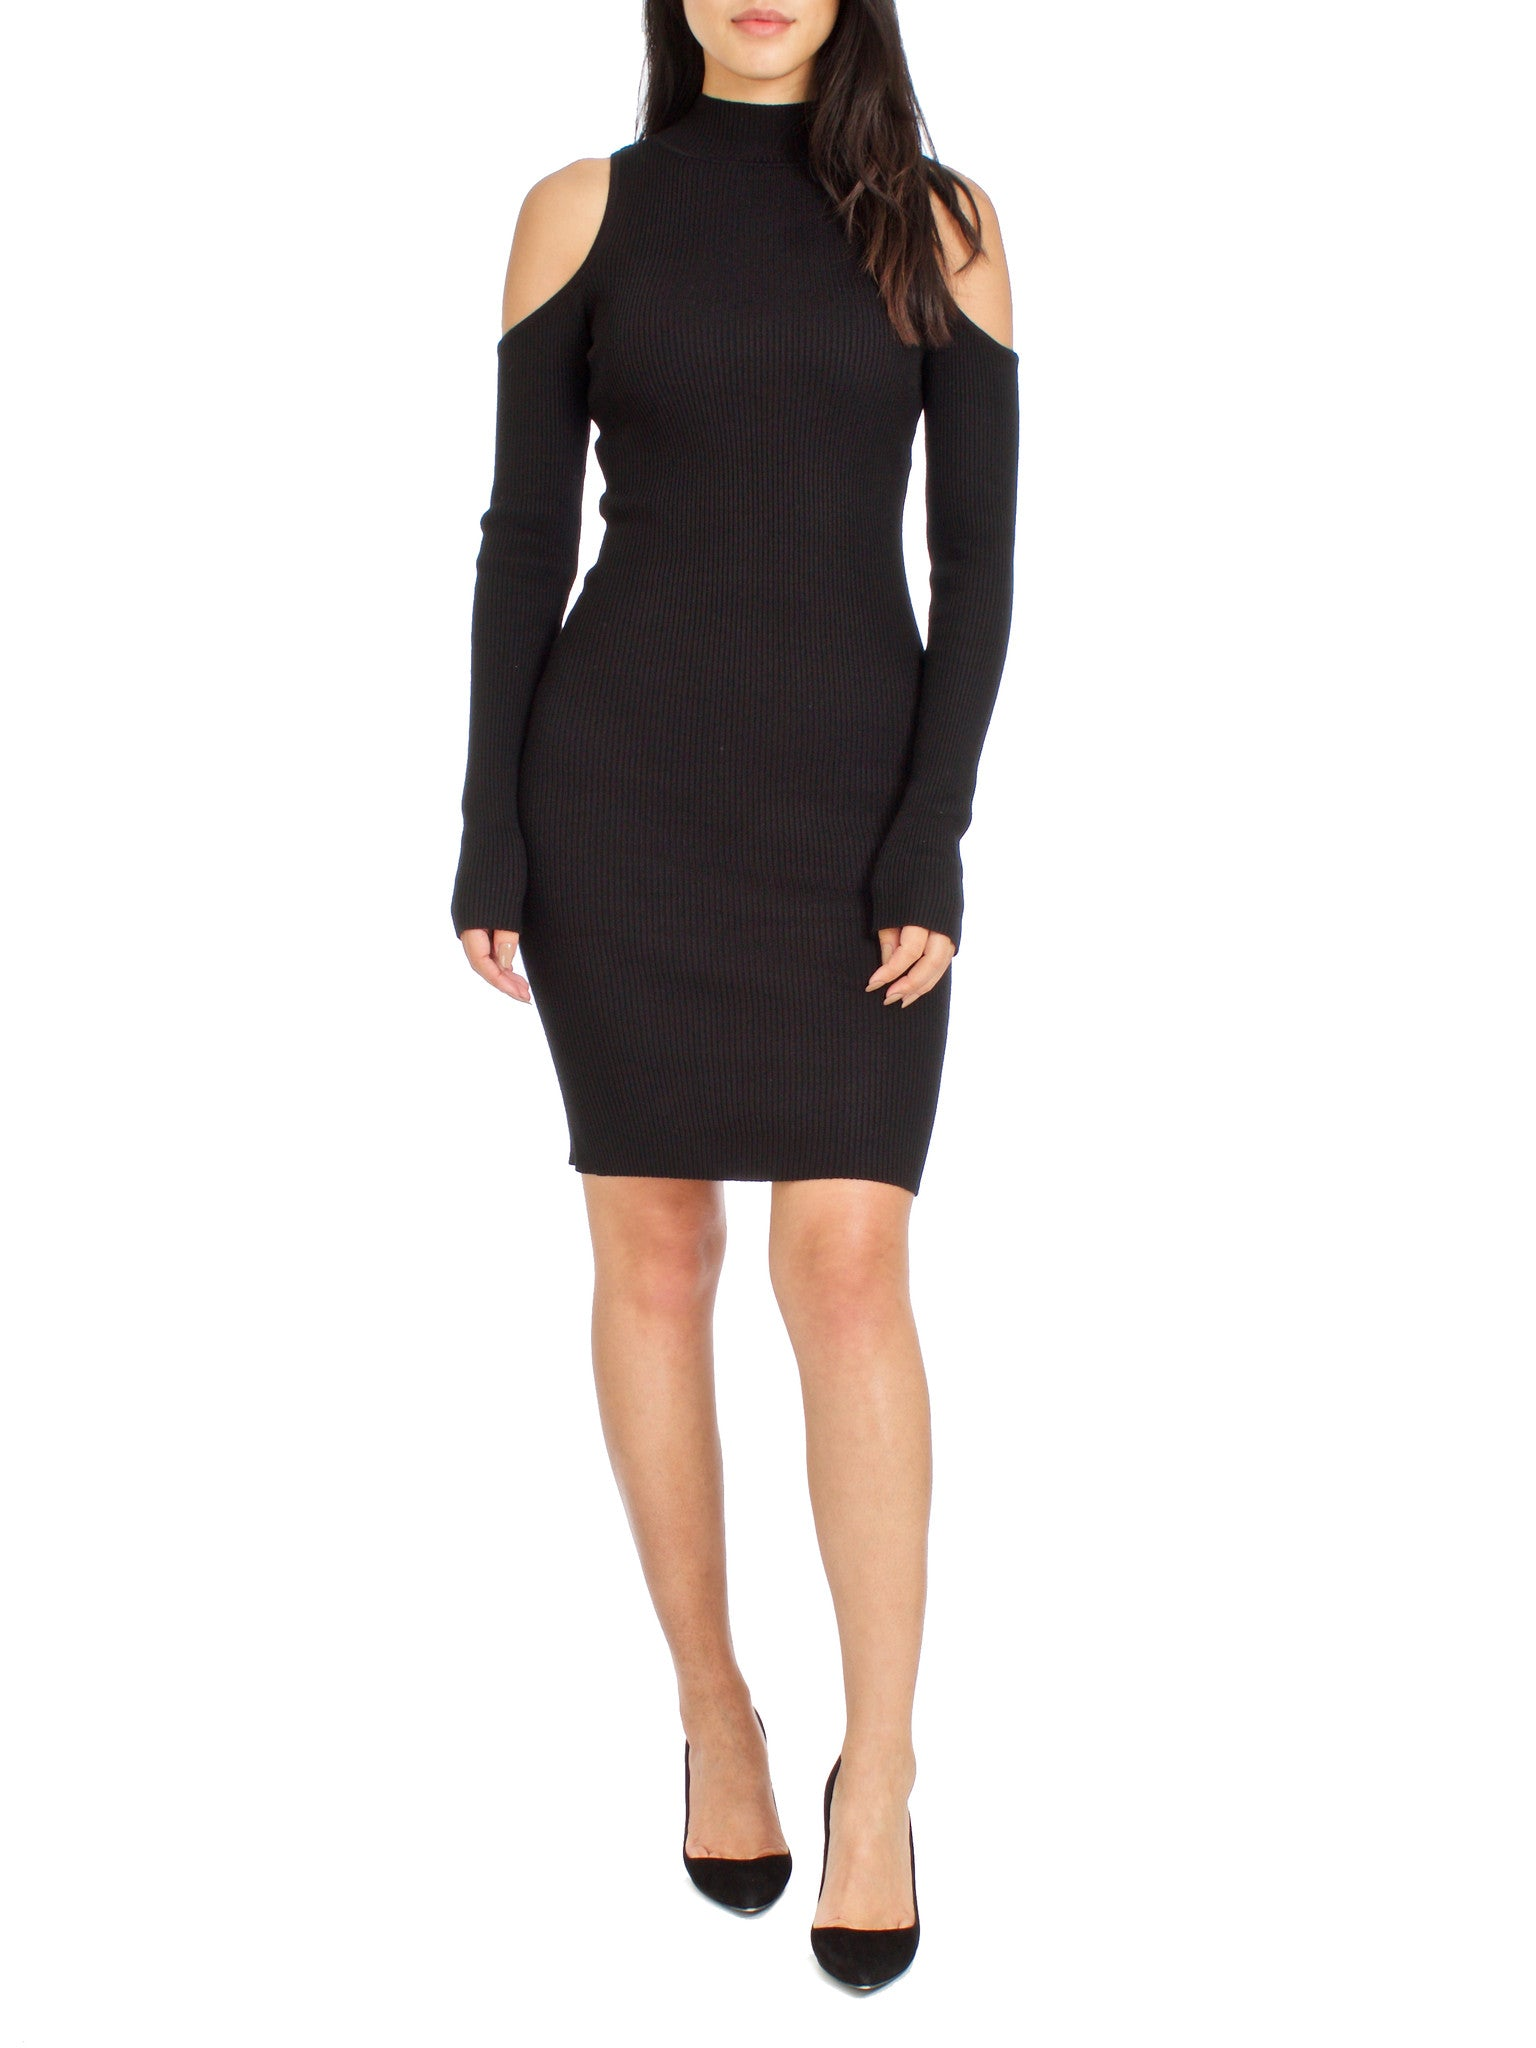 Bare Your Shoulders Ribbed Knit Dress - PRADEGAL